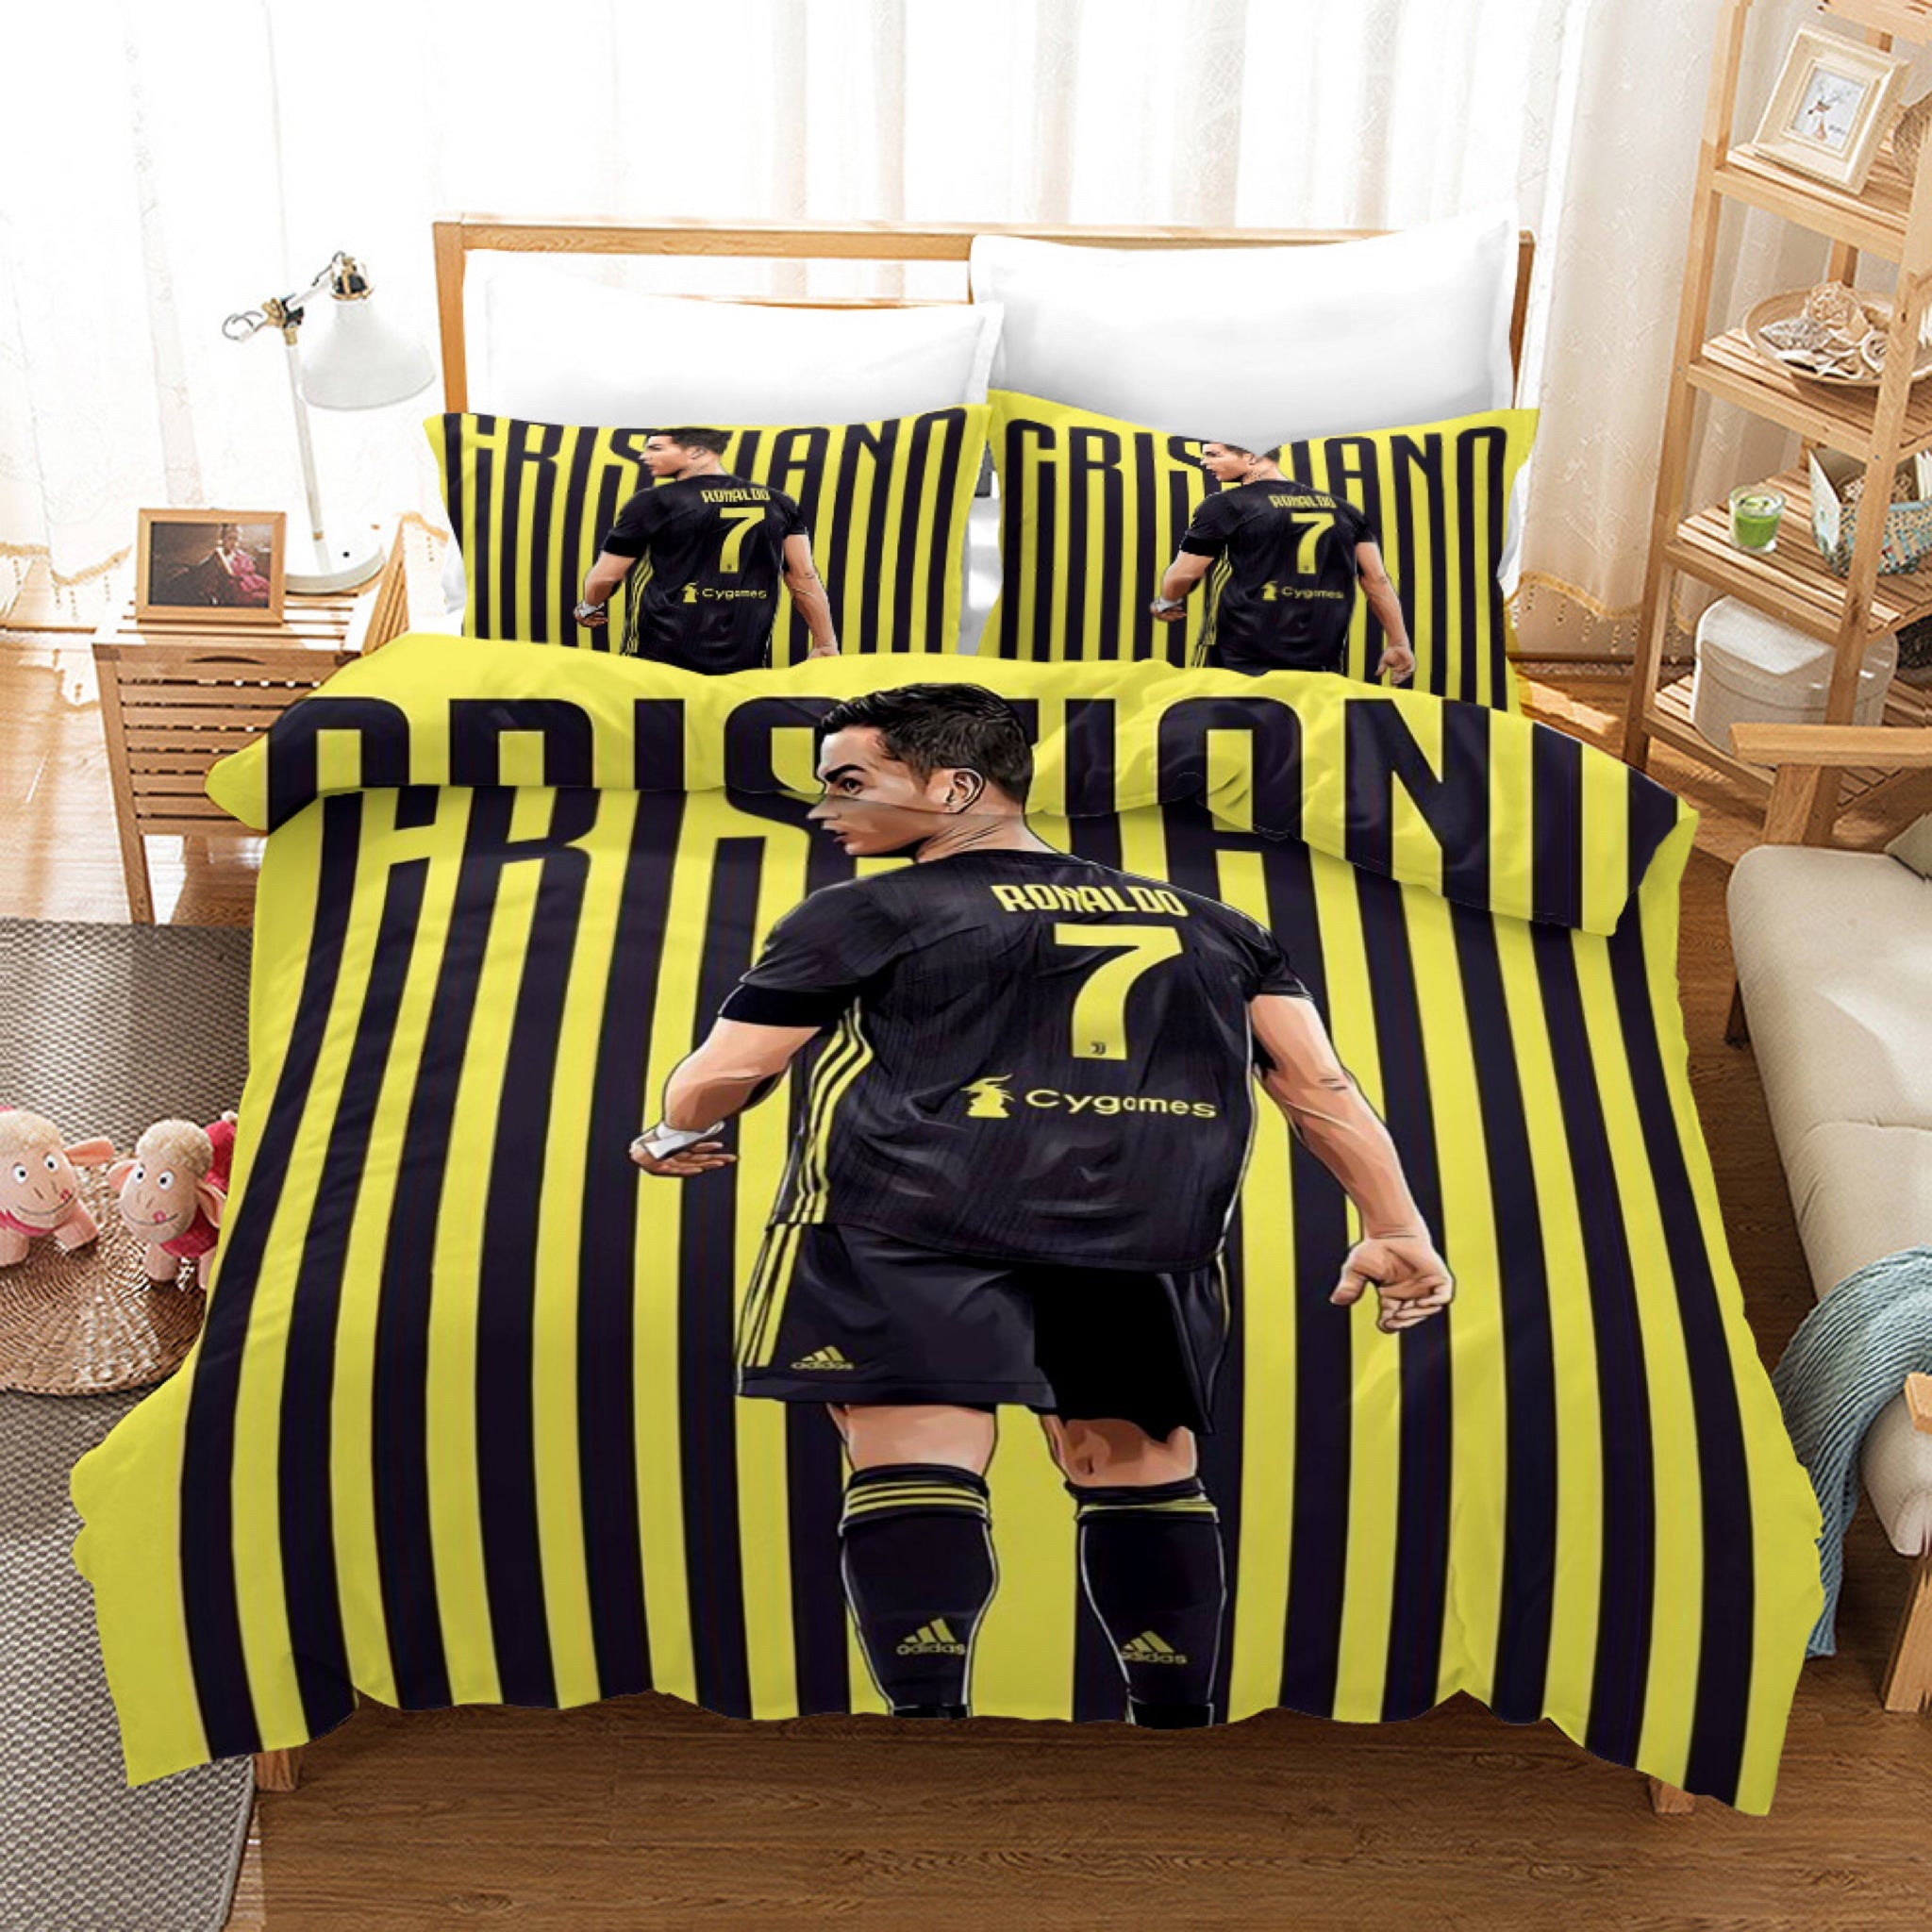 Cr7 Ronaldo Juventus Forza Soccer 2 Duvet Cover Quilt Cover Pillowcas Bedding Picky